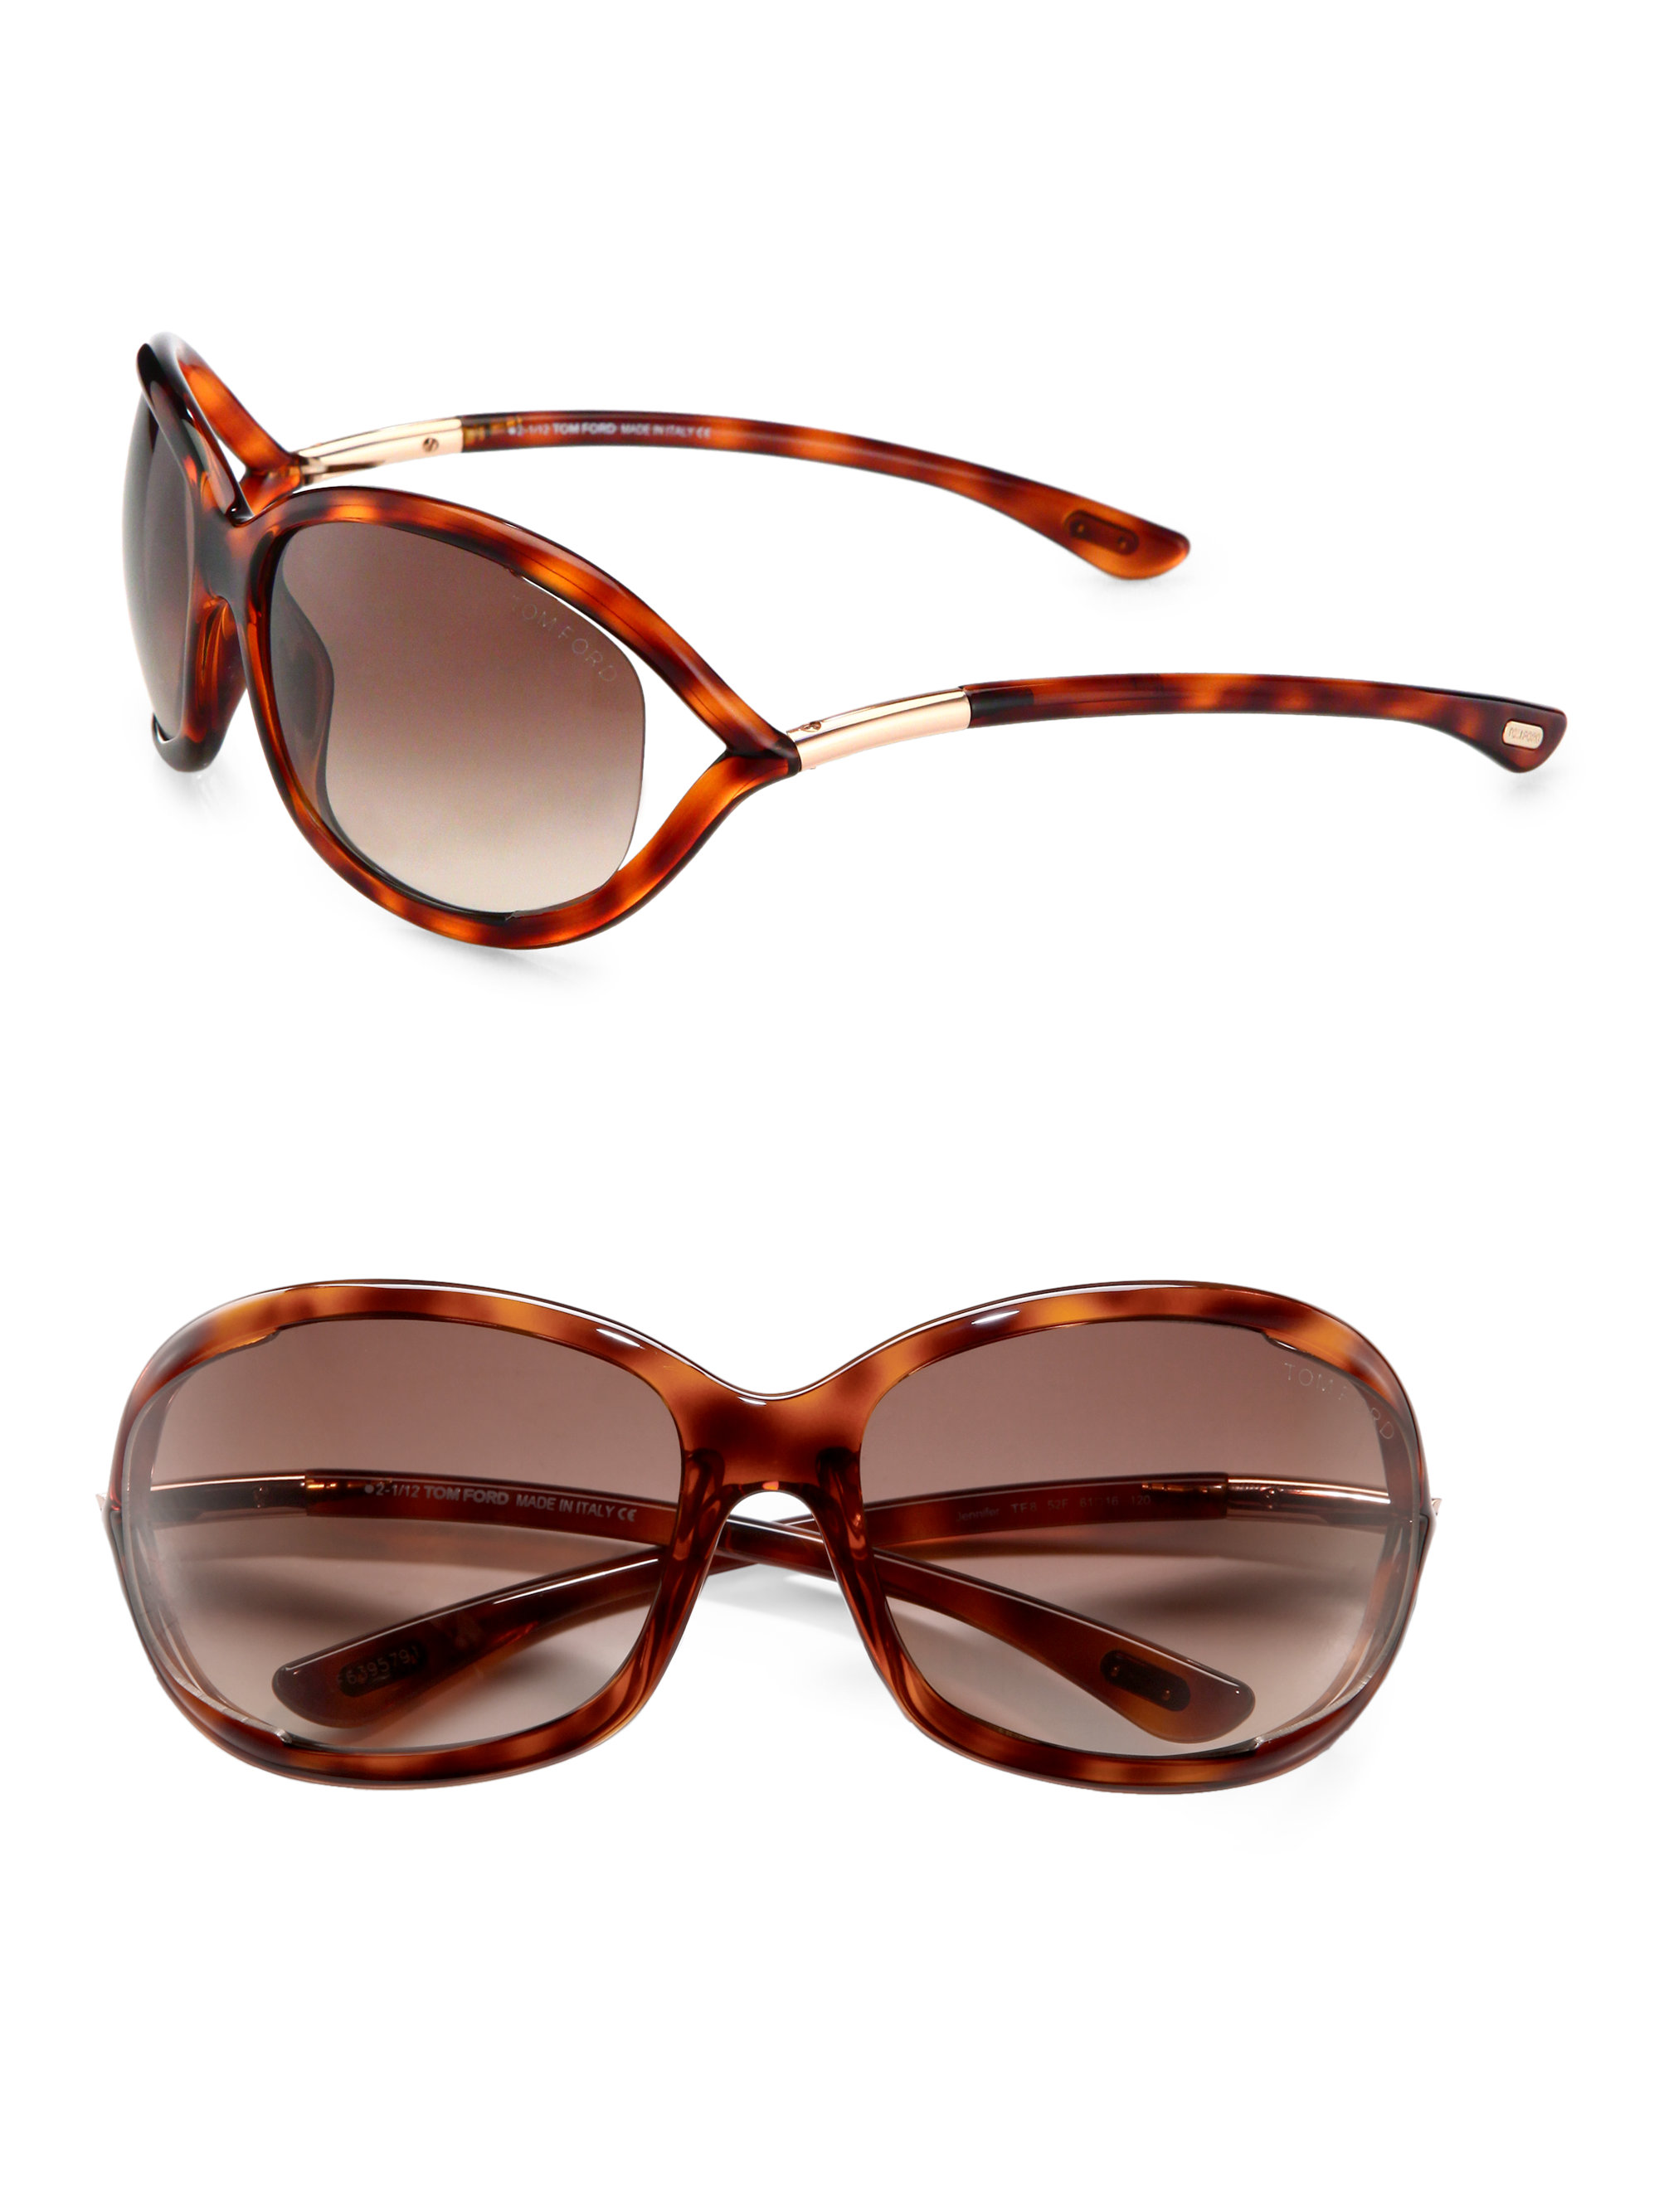 tom ford jennifer 61mm oval sunglasses havana in brown lyst. Cars Review. Best American Auto & Cars Review